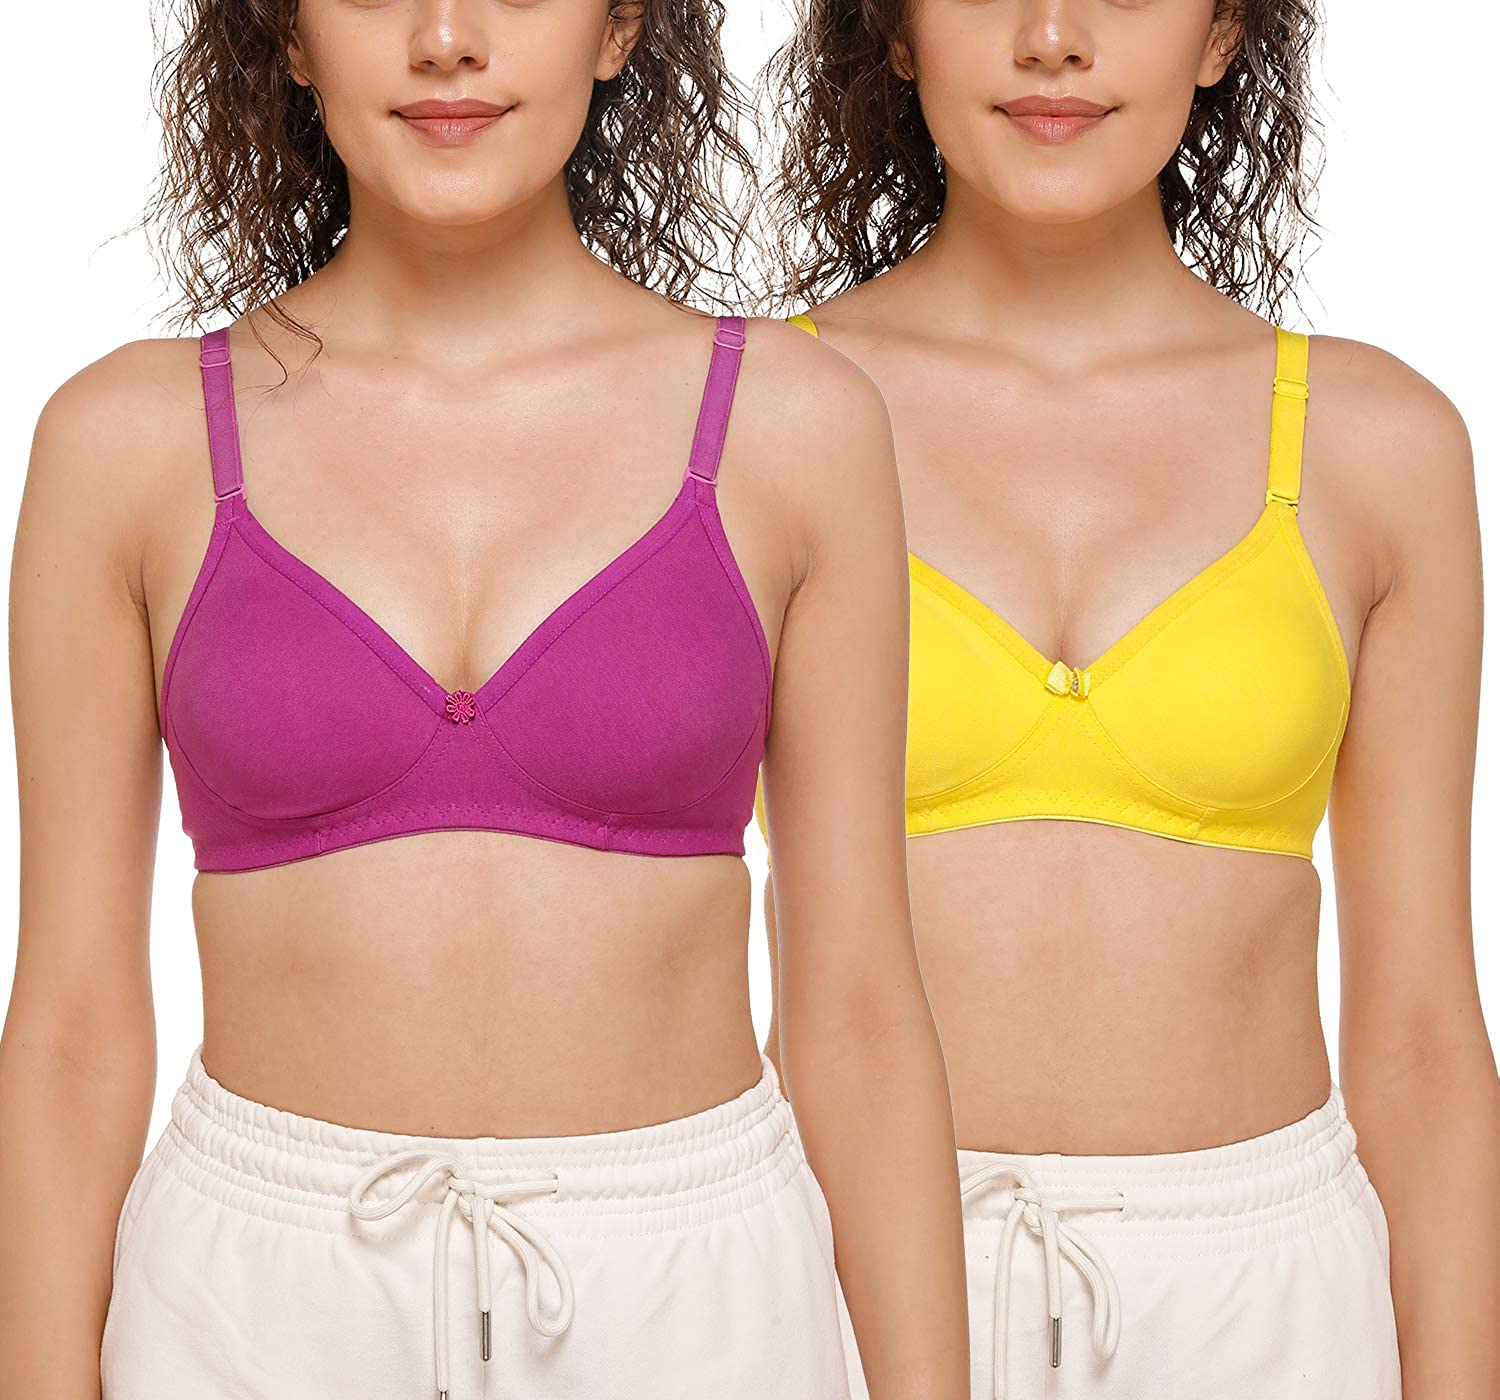 SONA Women's Hosiery Cotton M1001 T-Shirt Some reservation Non-Padded Assort Bra Tampa Mall